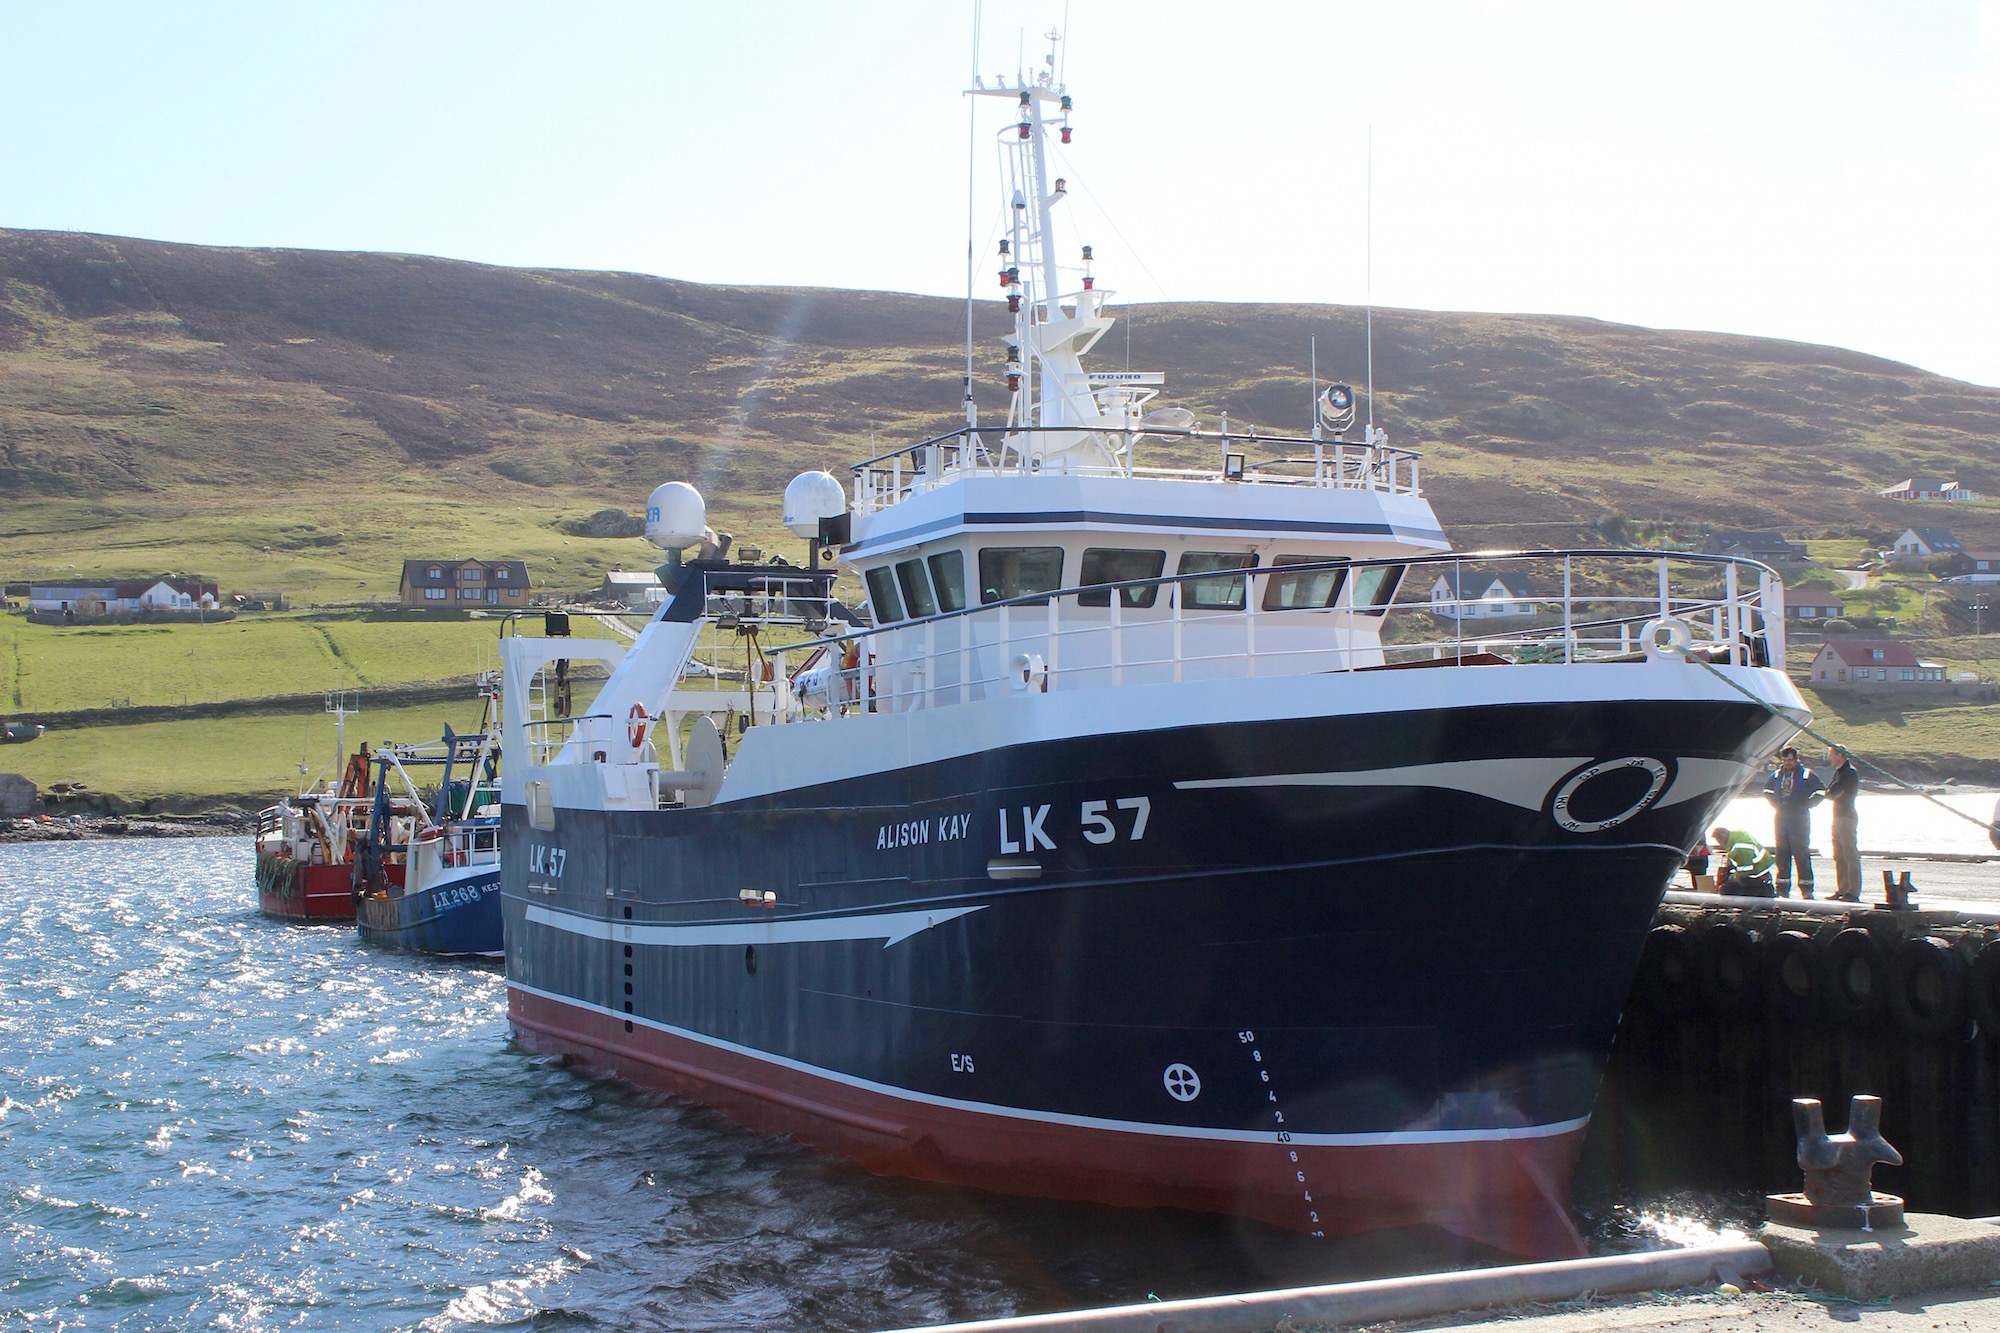 The newly-lengthened Alison Kay at Scalloway in April.